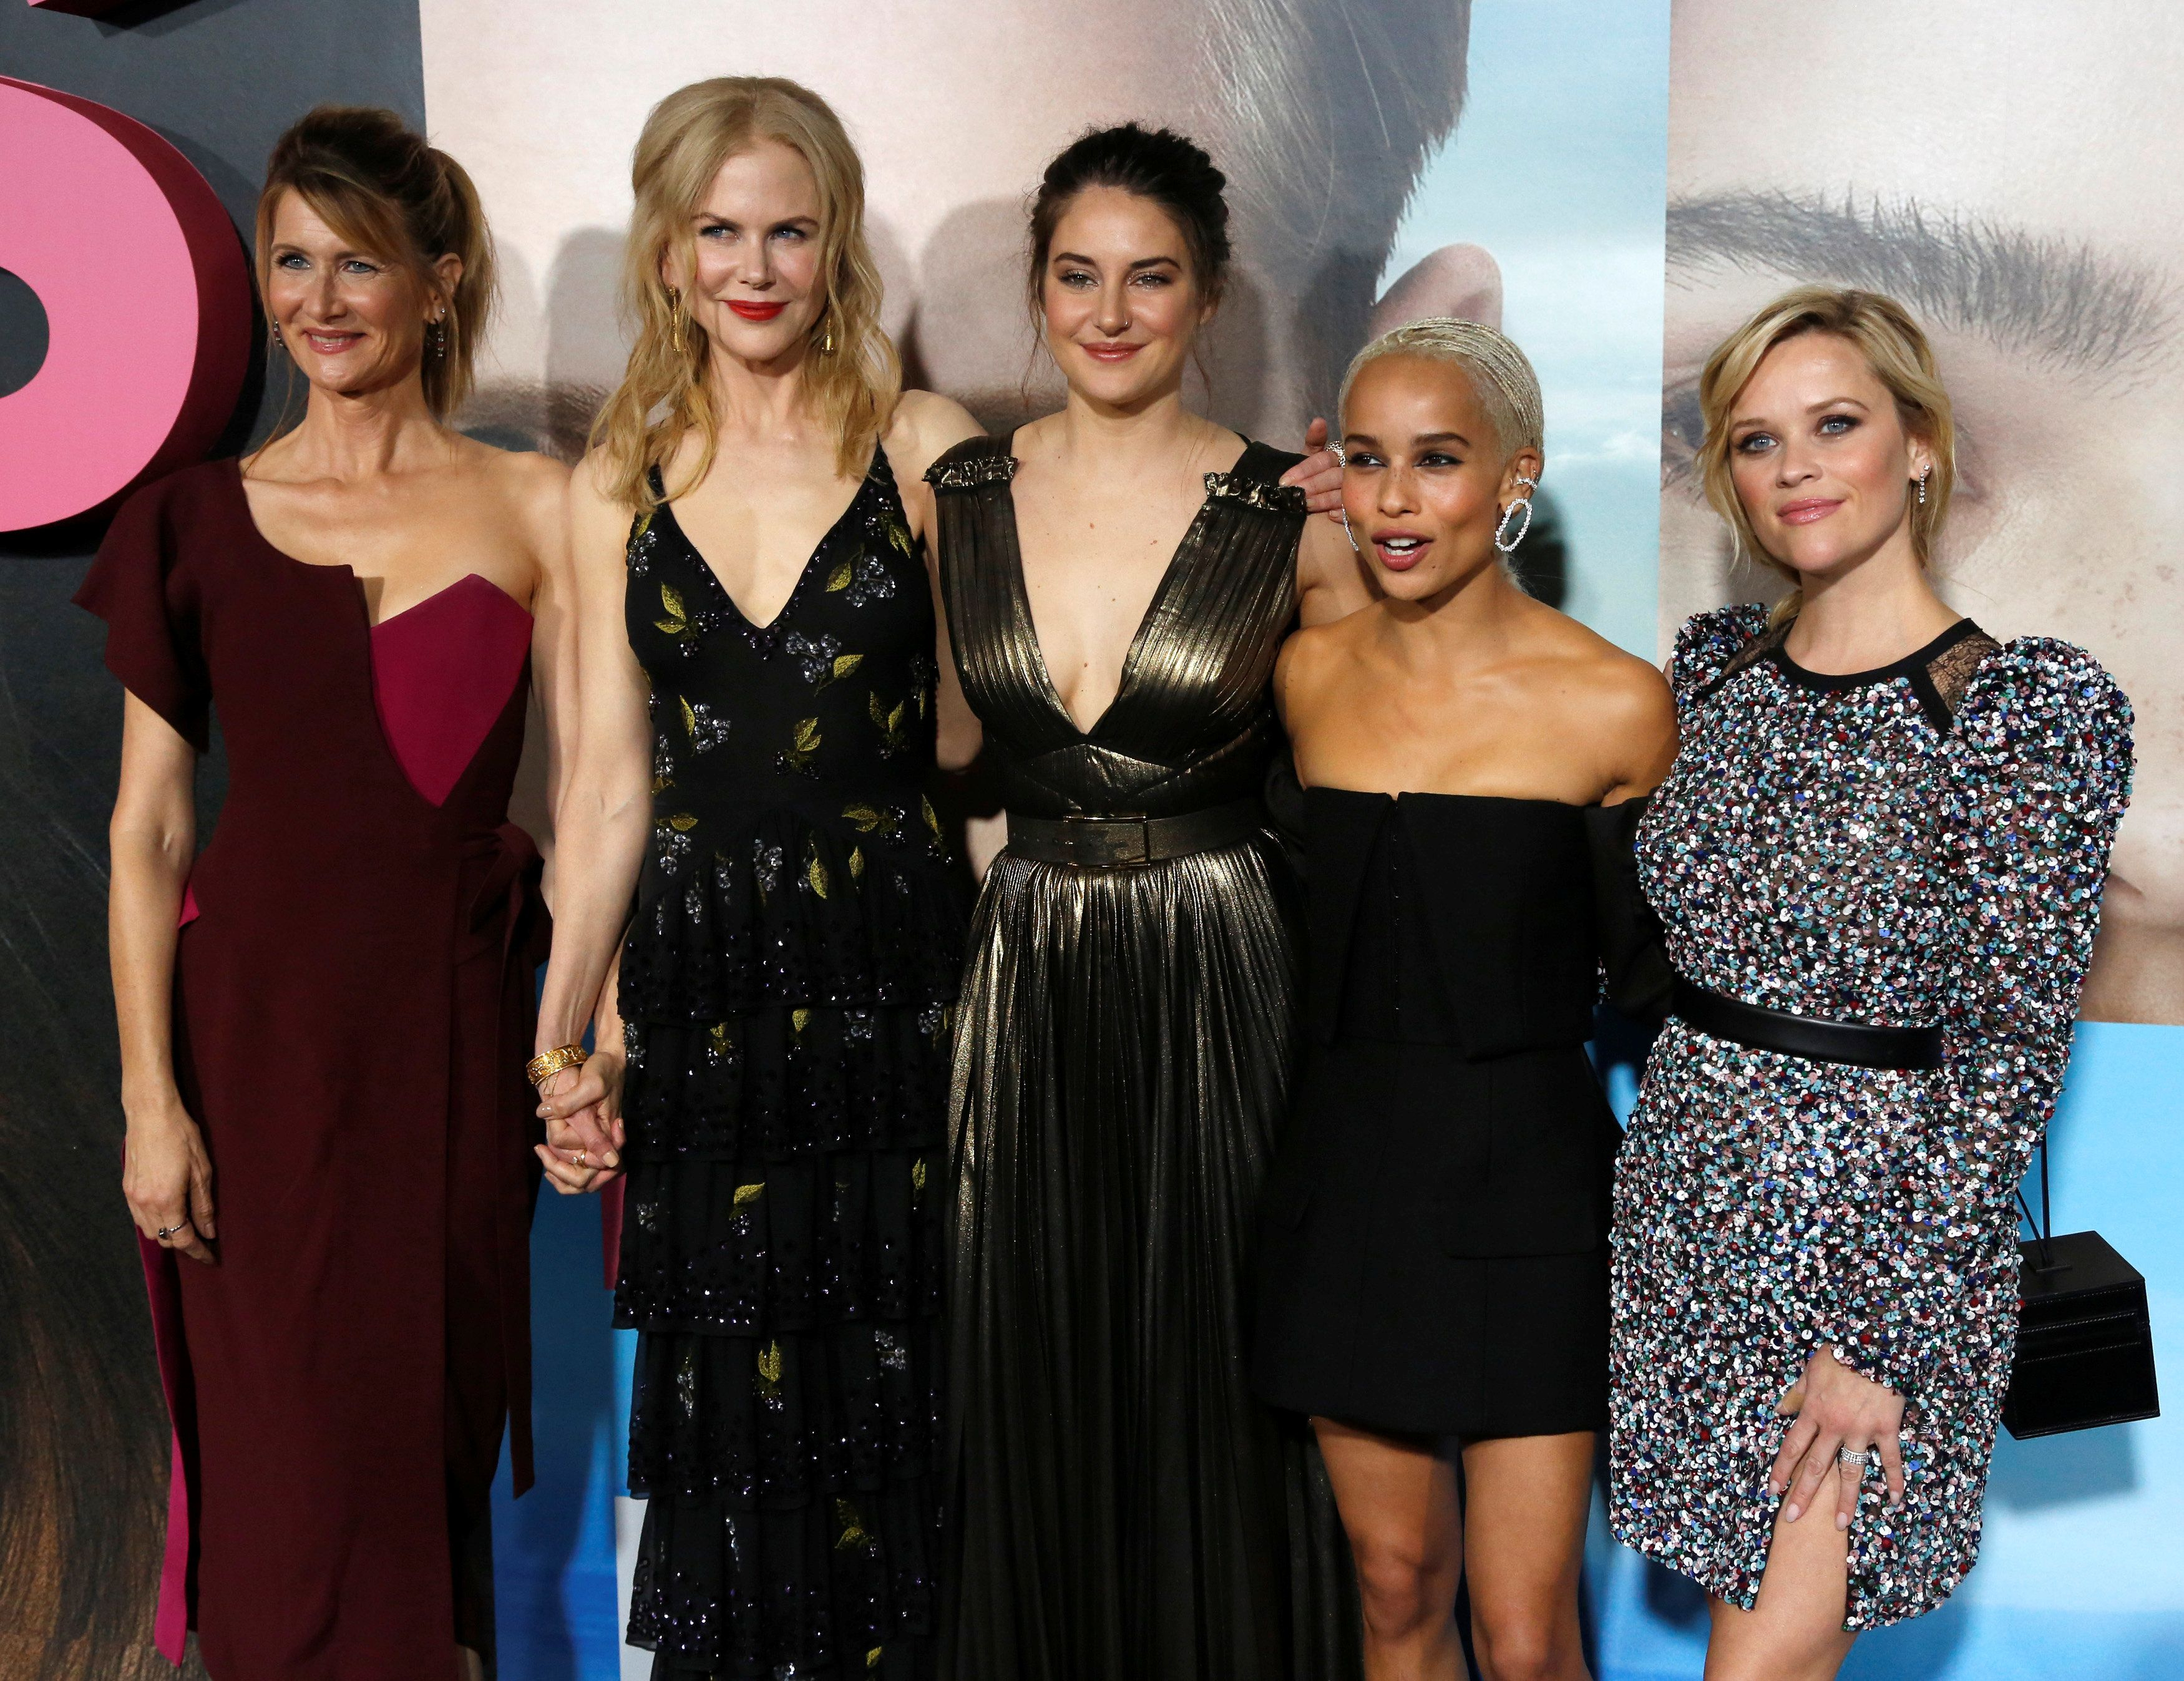 Cast members (L-R) Laura Dern, Nicole Kidman, Shailene Woodley, Zoe Kravitz and Reese Witherspoon pose at the premiere of the